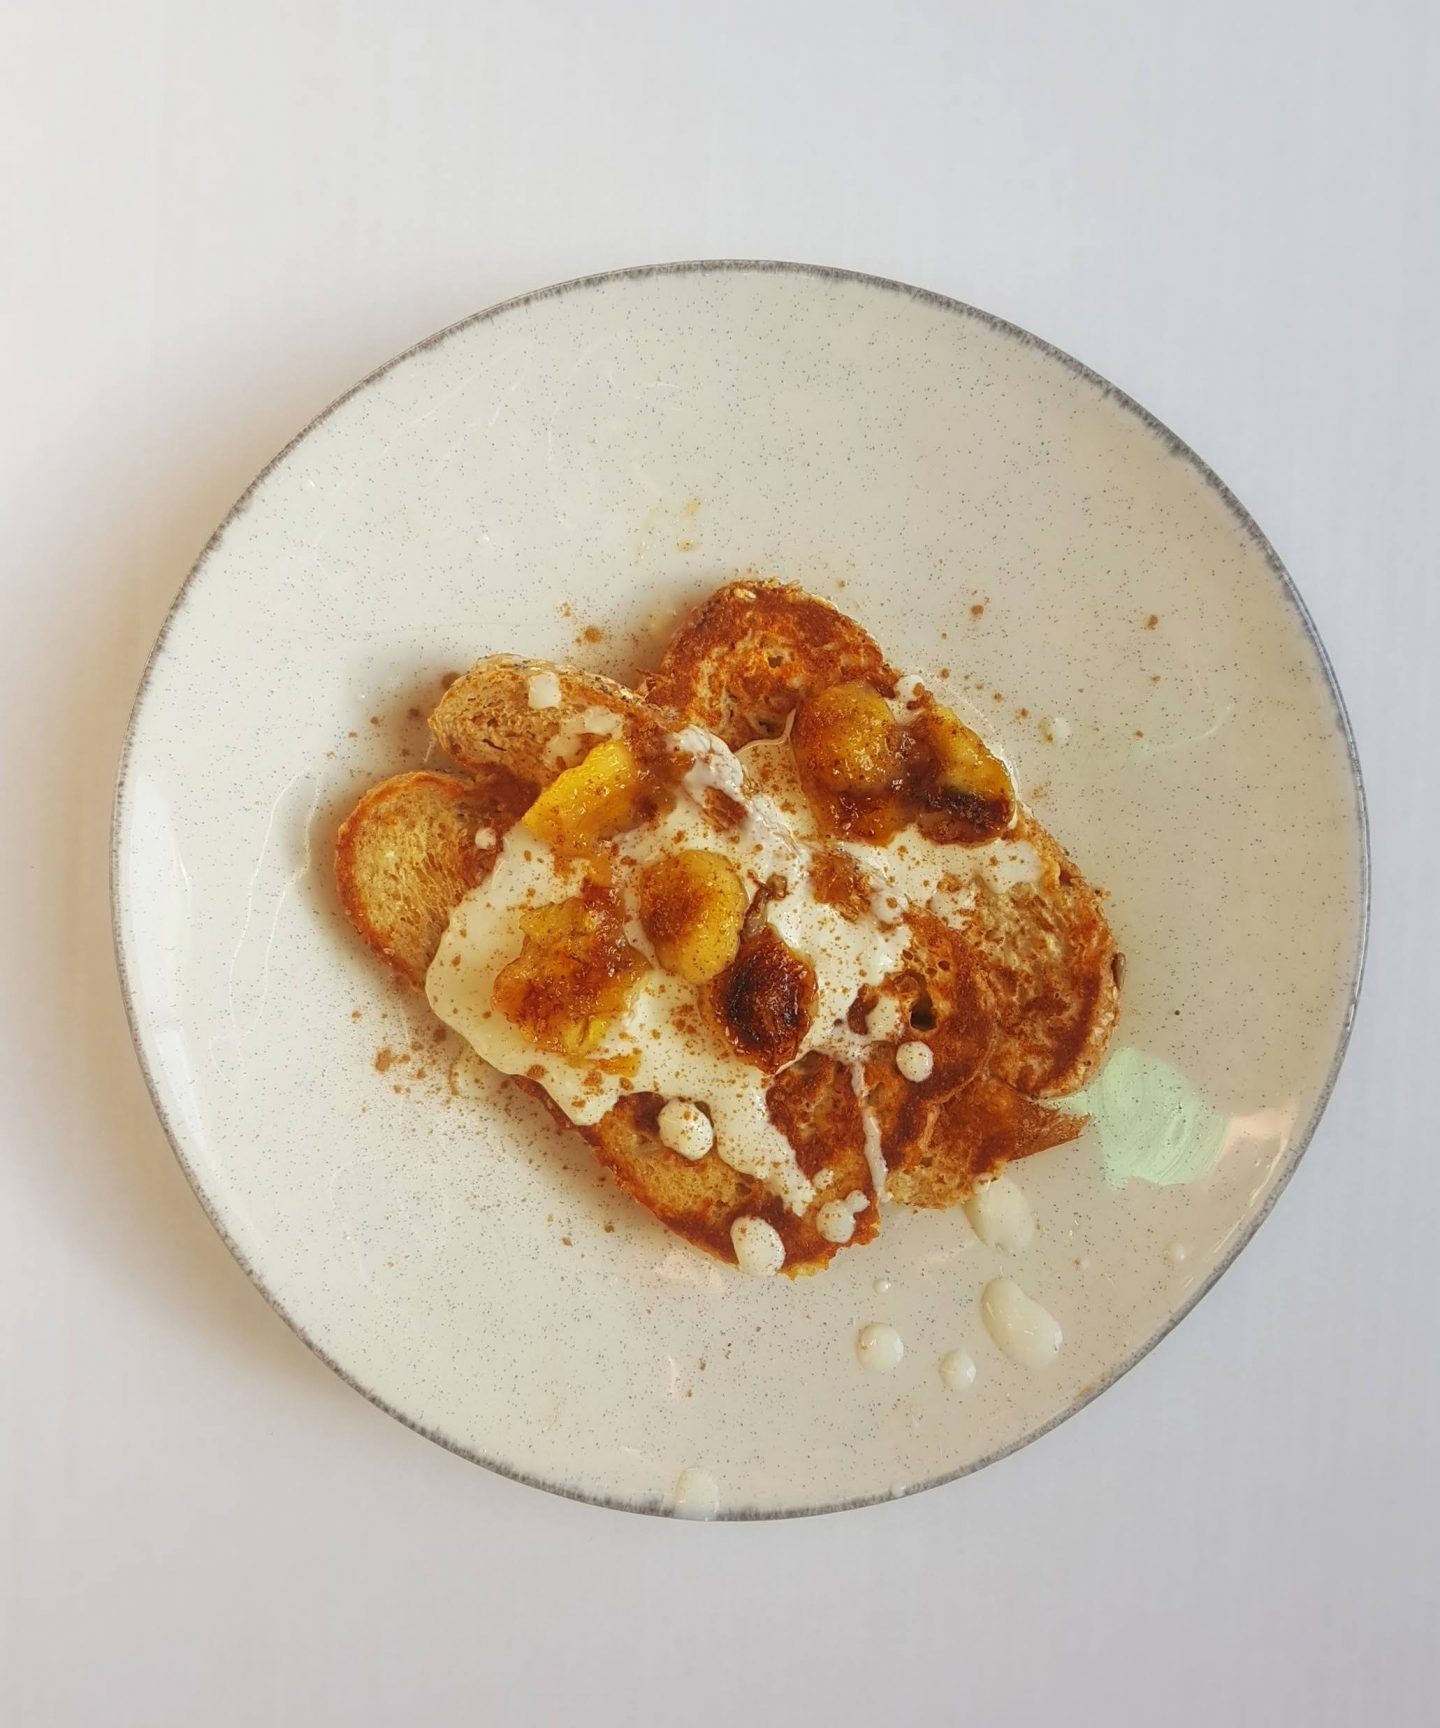 Protein French Toast with Caramelized Bananas, Cinnamon & Ginger